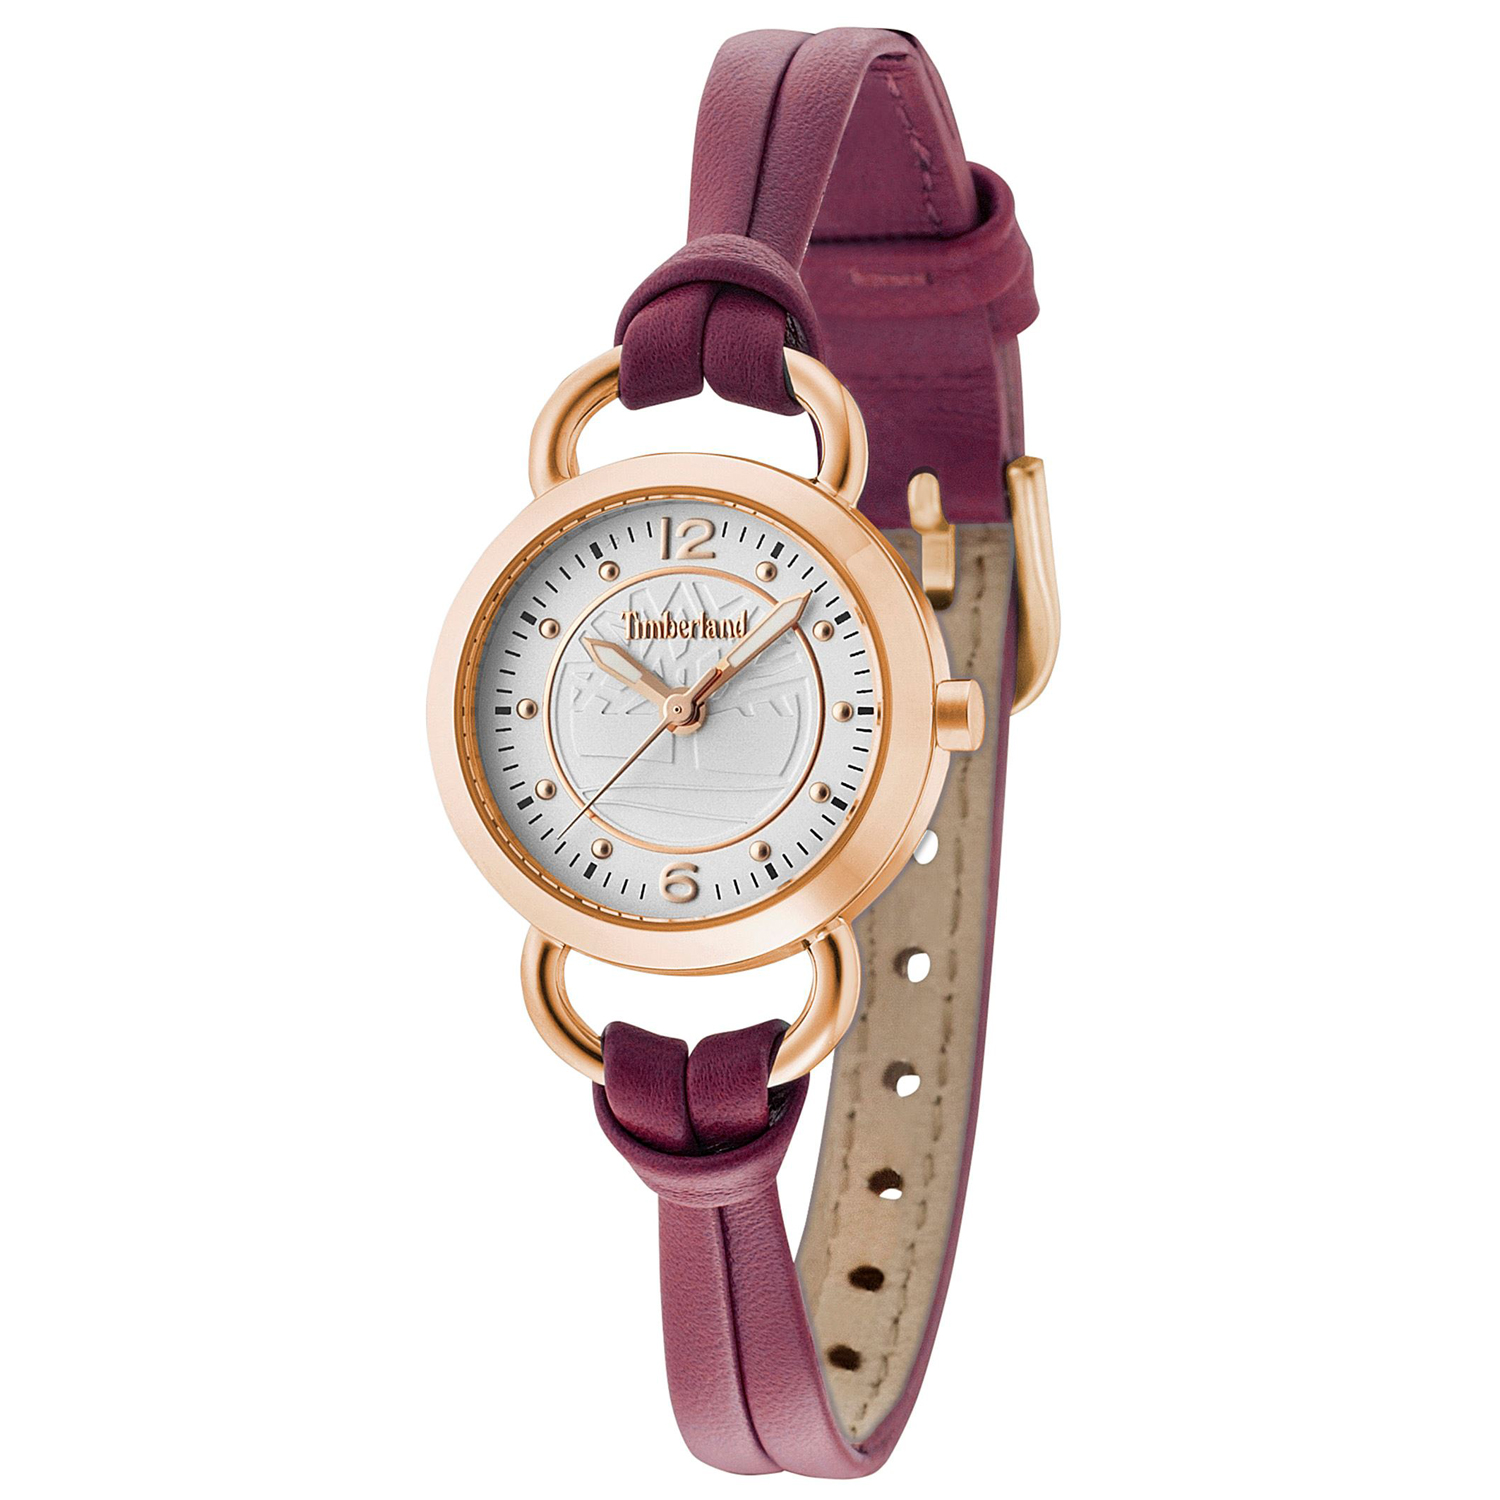 Timberland Watch TBL.15269LSR/01A Roslindale Rose Gold